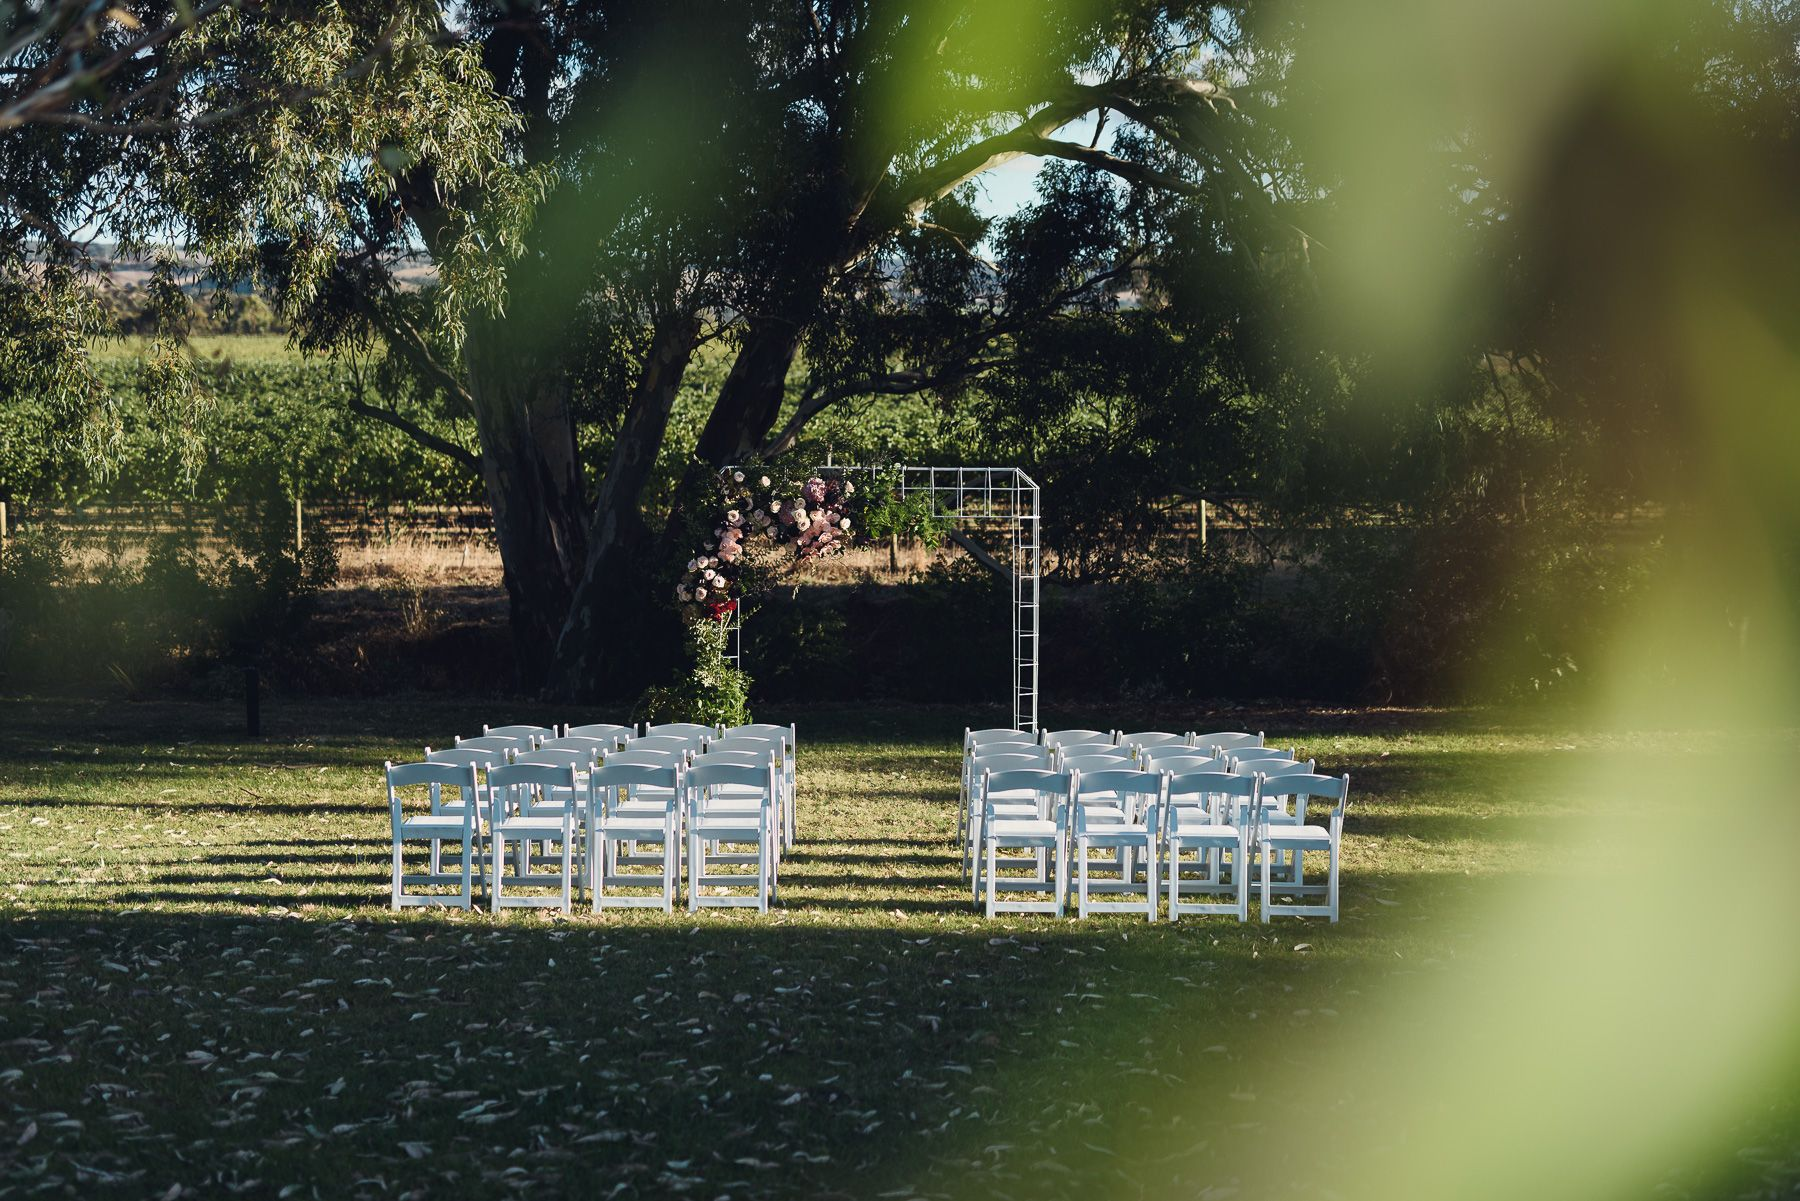 Pin By Mitolo Wines On Weddings At Mitolo Wines Outdoor Decor